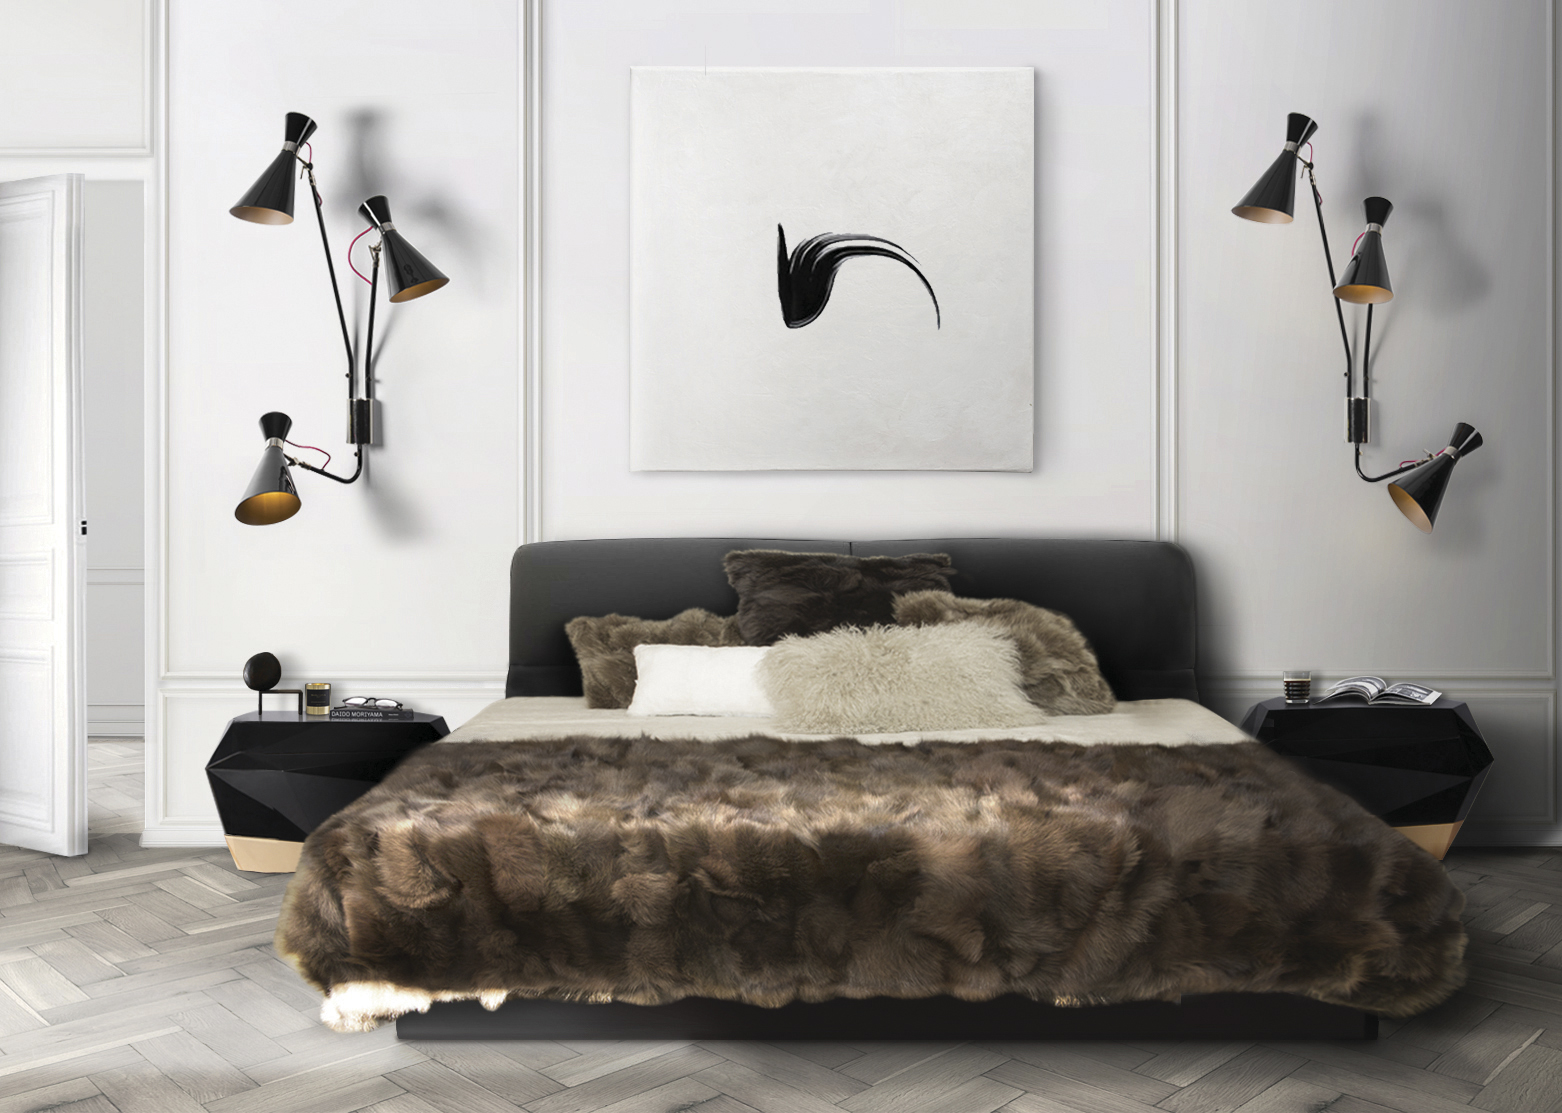 Bedroom Design Ideas You Will Want to Sleep In bedroom design ideas Bedroom Design Ideas You Will Want to Sleep In Bedroom Design Ideas You Will Want to Sleep In 9